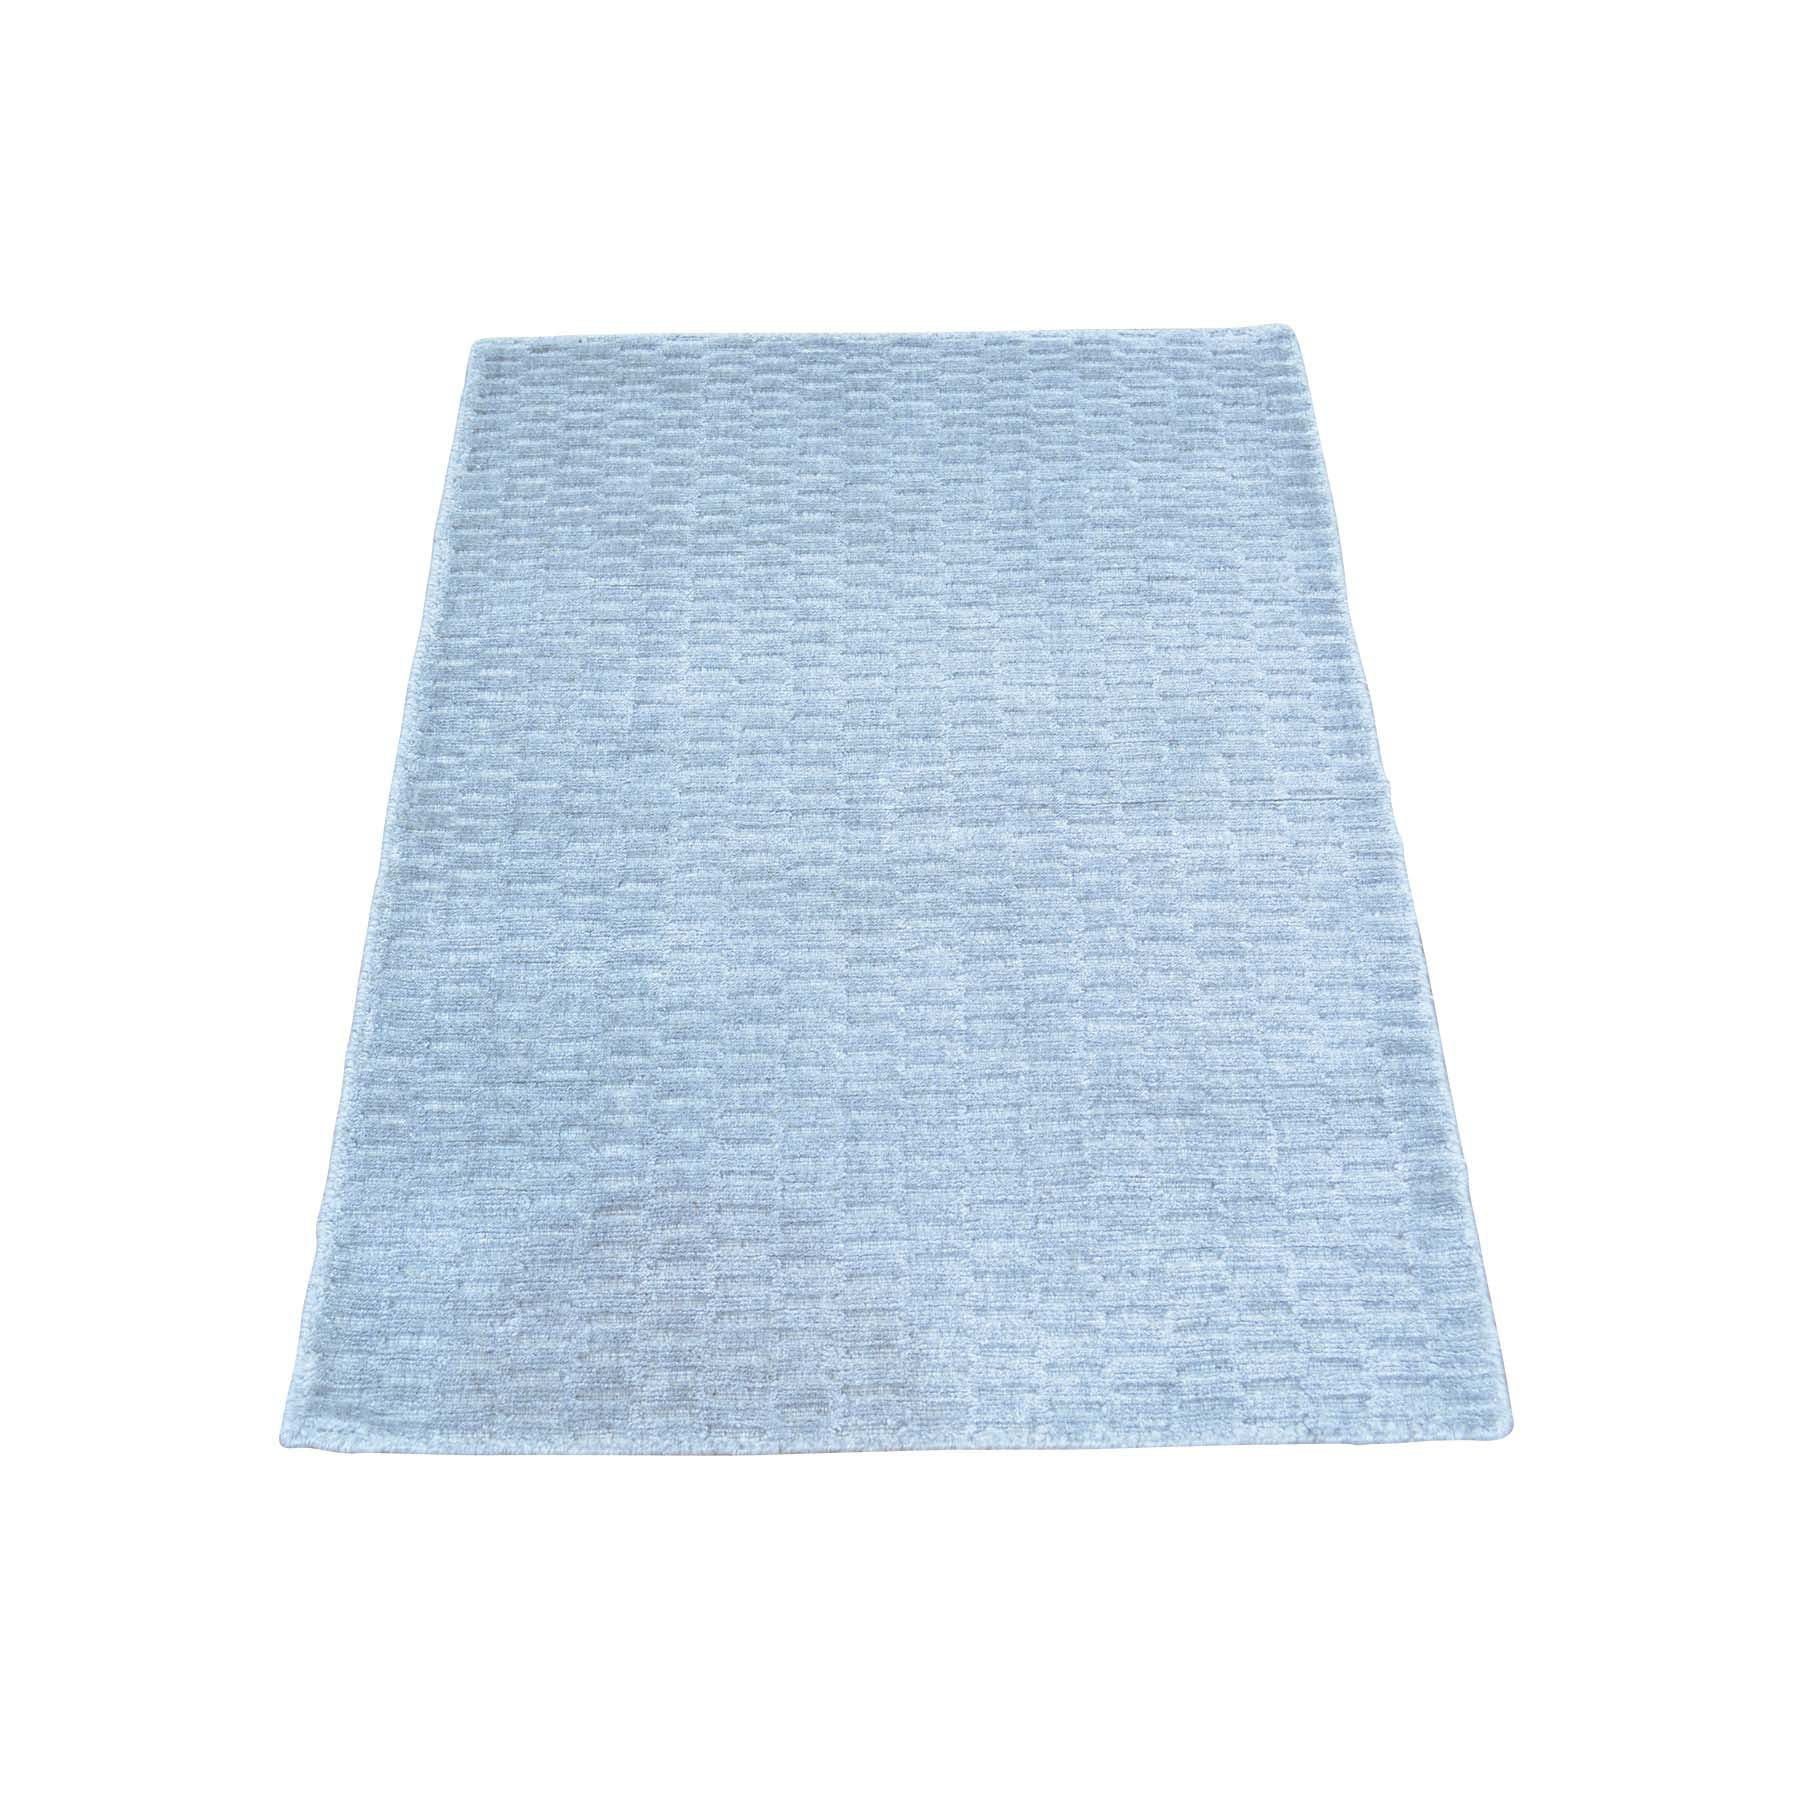 "Handmade Modern and Contemporary Rectangle Rug > Design# SH29955 > Size: 2'-0"" x 3'-0"" [ONLINE ONLY]"